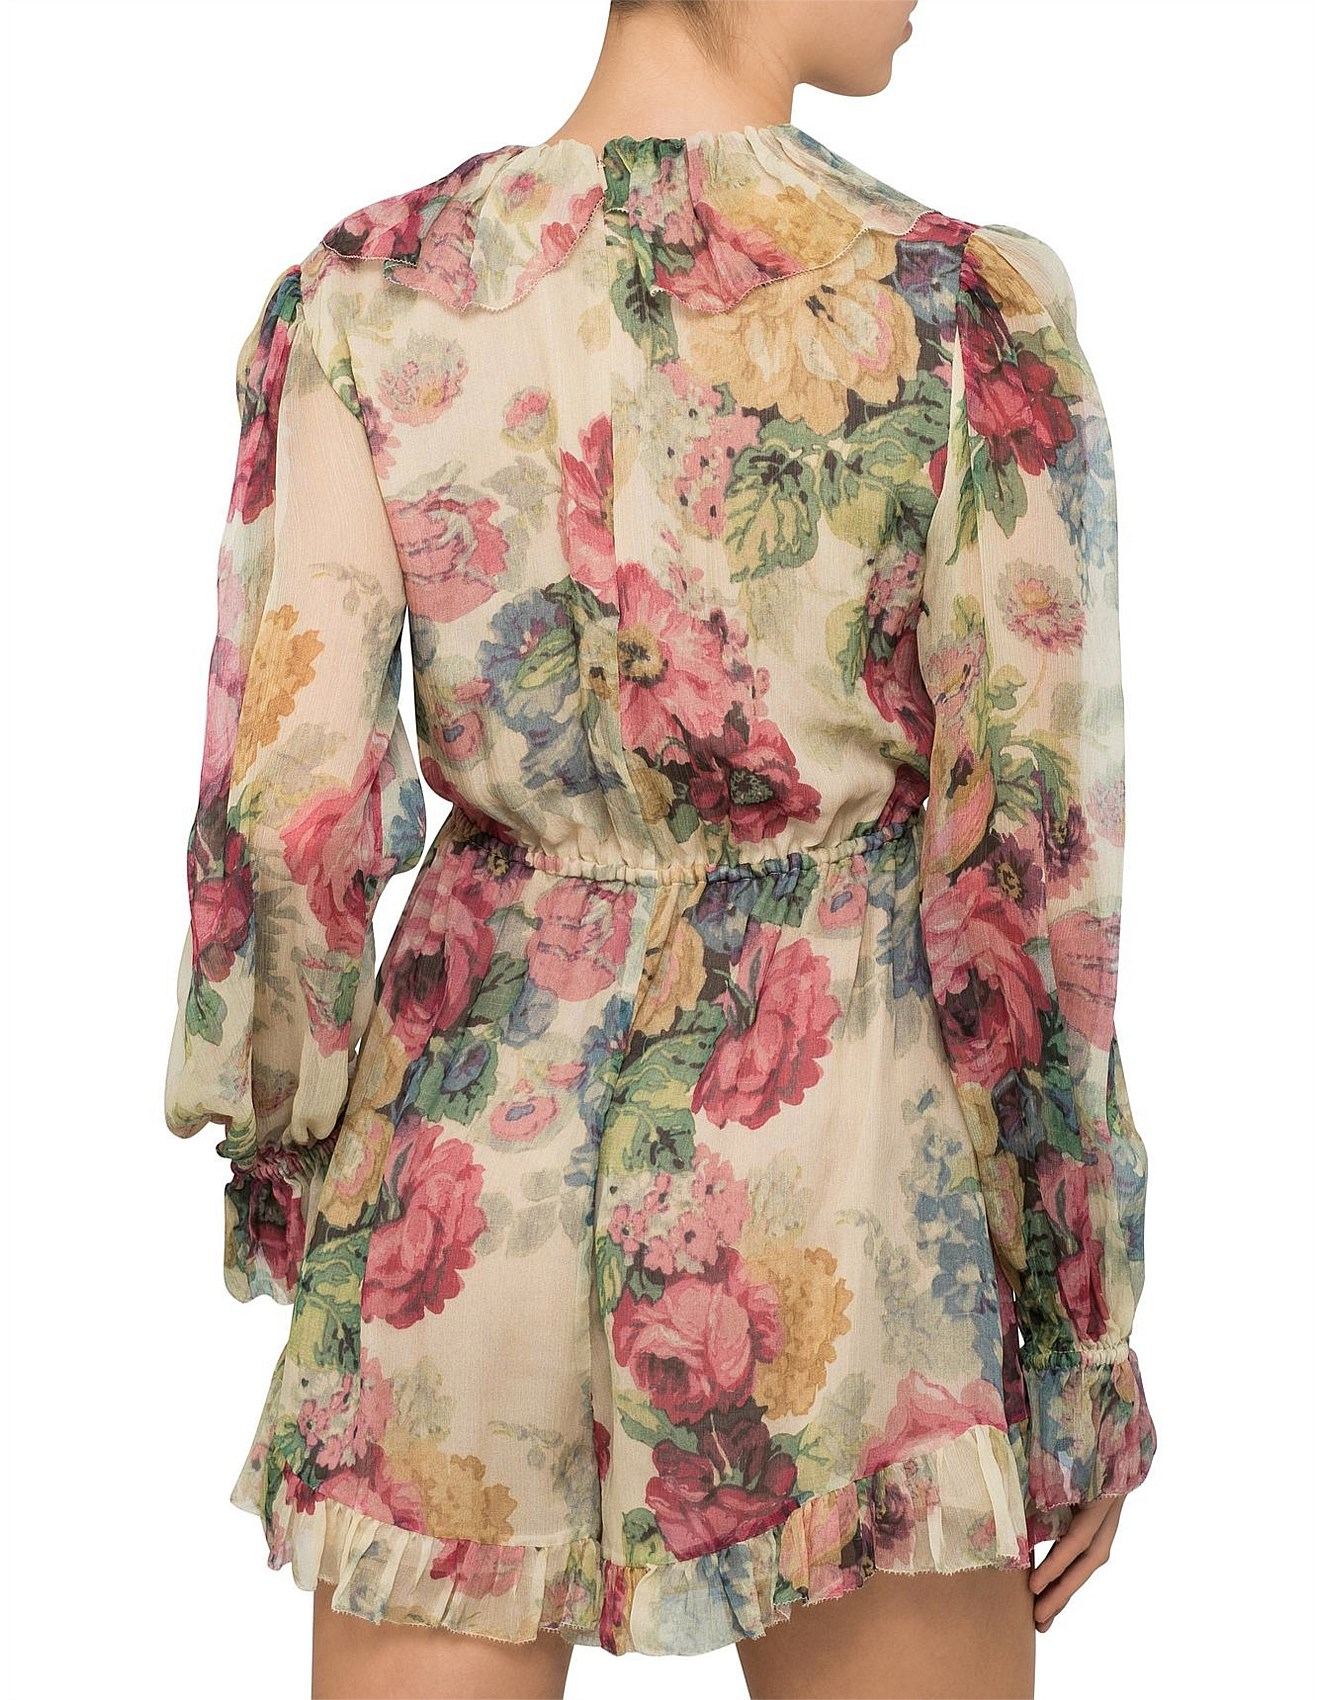 5f6577bee0 Melody Floating Playsuit Special Offer. 1